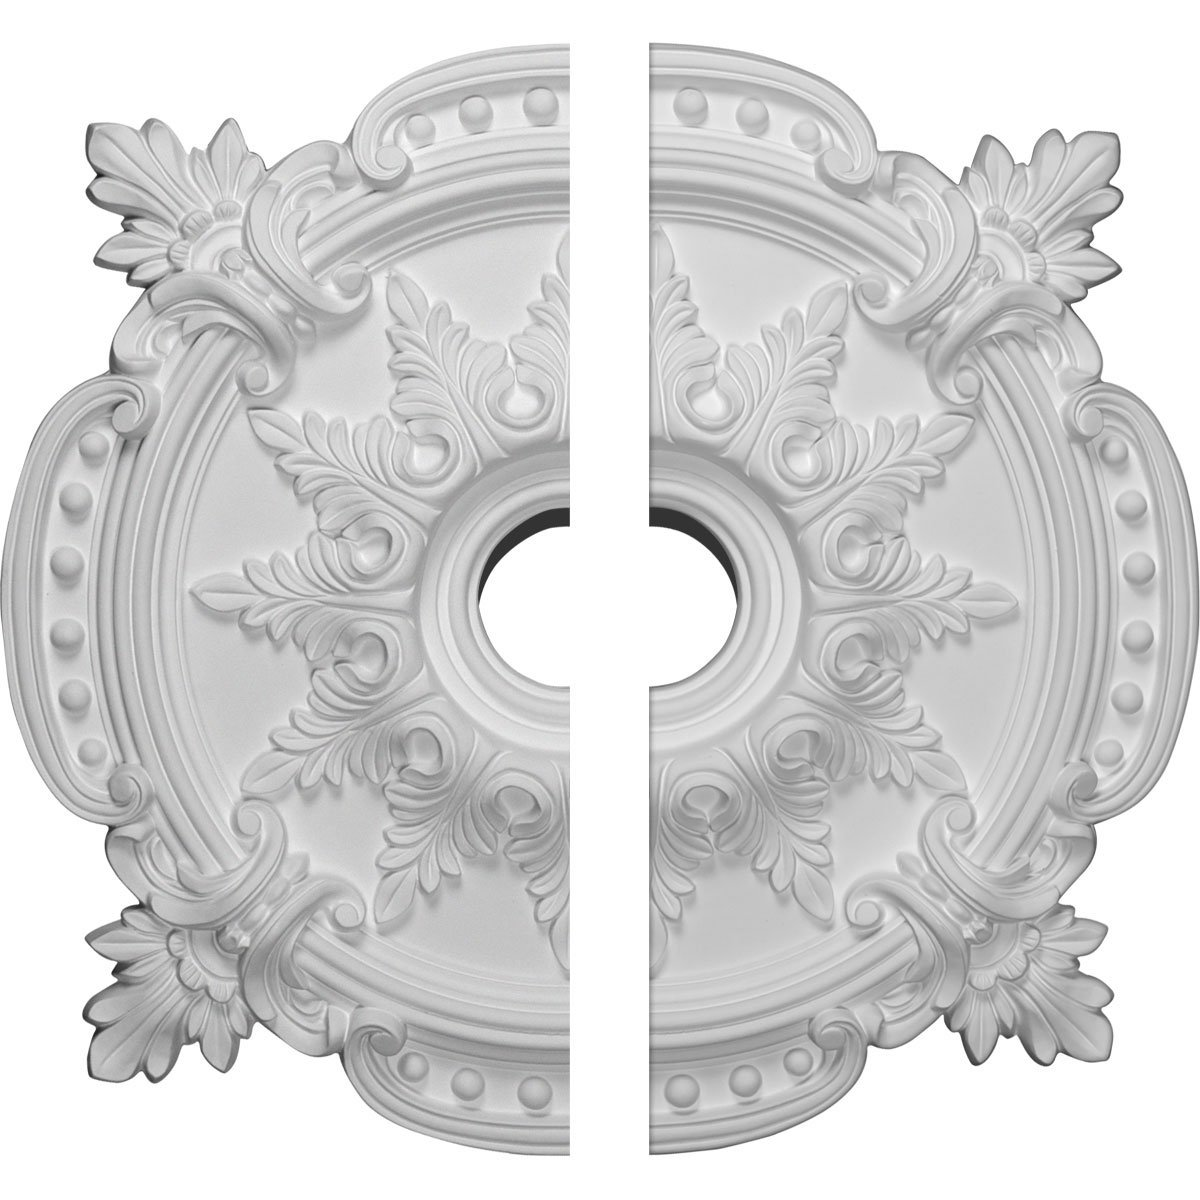 Ekena Millwork CM28BE2 Benson Classic Ceiling Medallion (Fits Canopies up to 6 1/2''), Hand Painted, 28 3/8''OD x 3 3/4''ID x 1 5/8''P, Factory Primed White